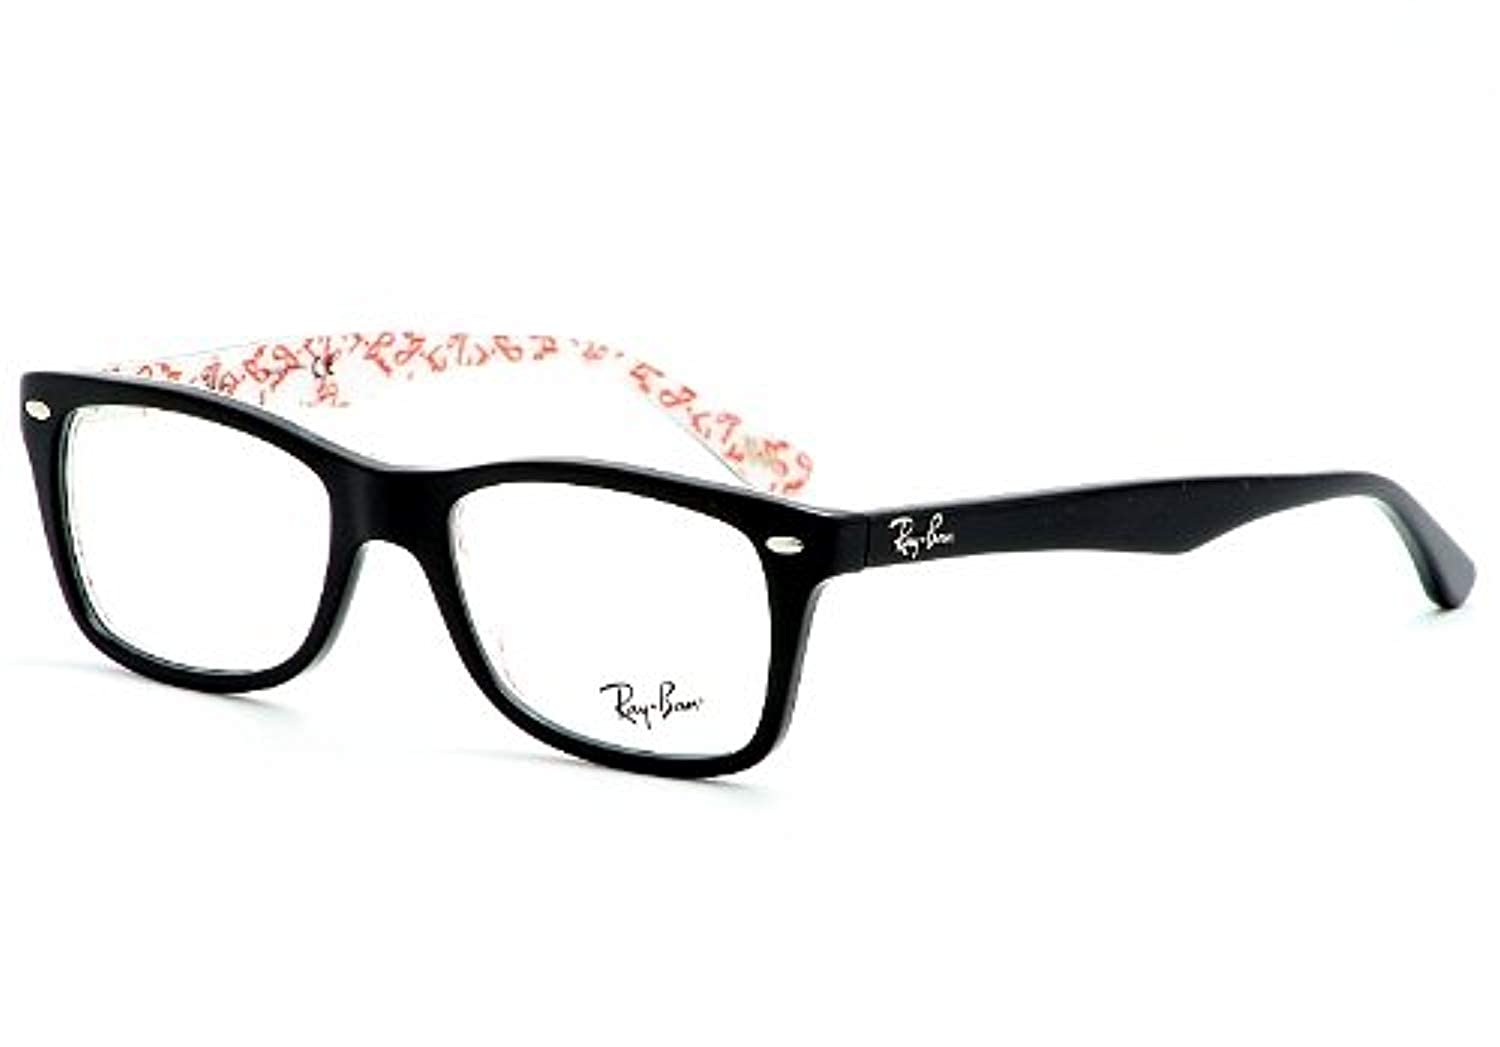 Ray-Ban Eyeglasses RX 5228 5014 Top Black on Texture RB 5228 B005IAGEZW